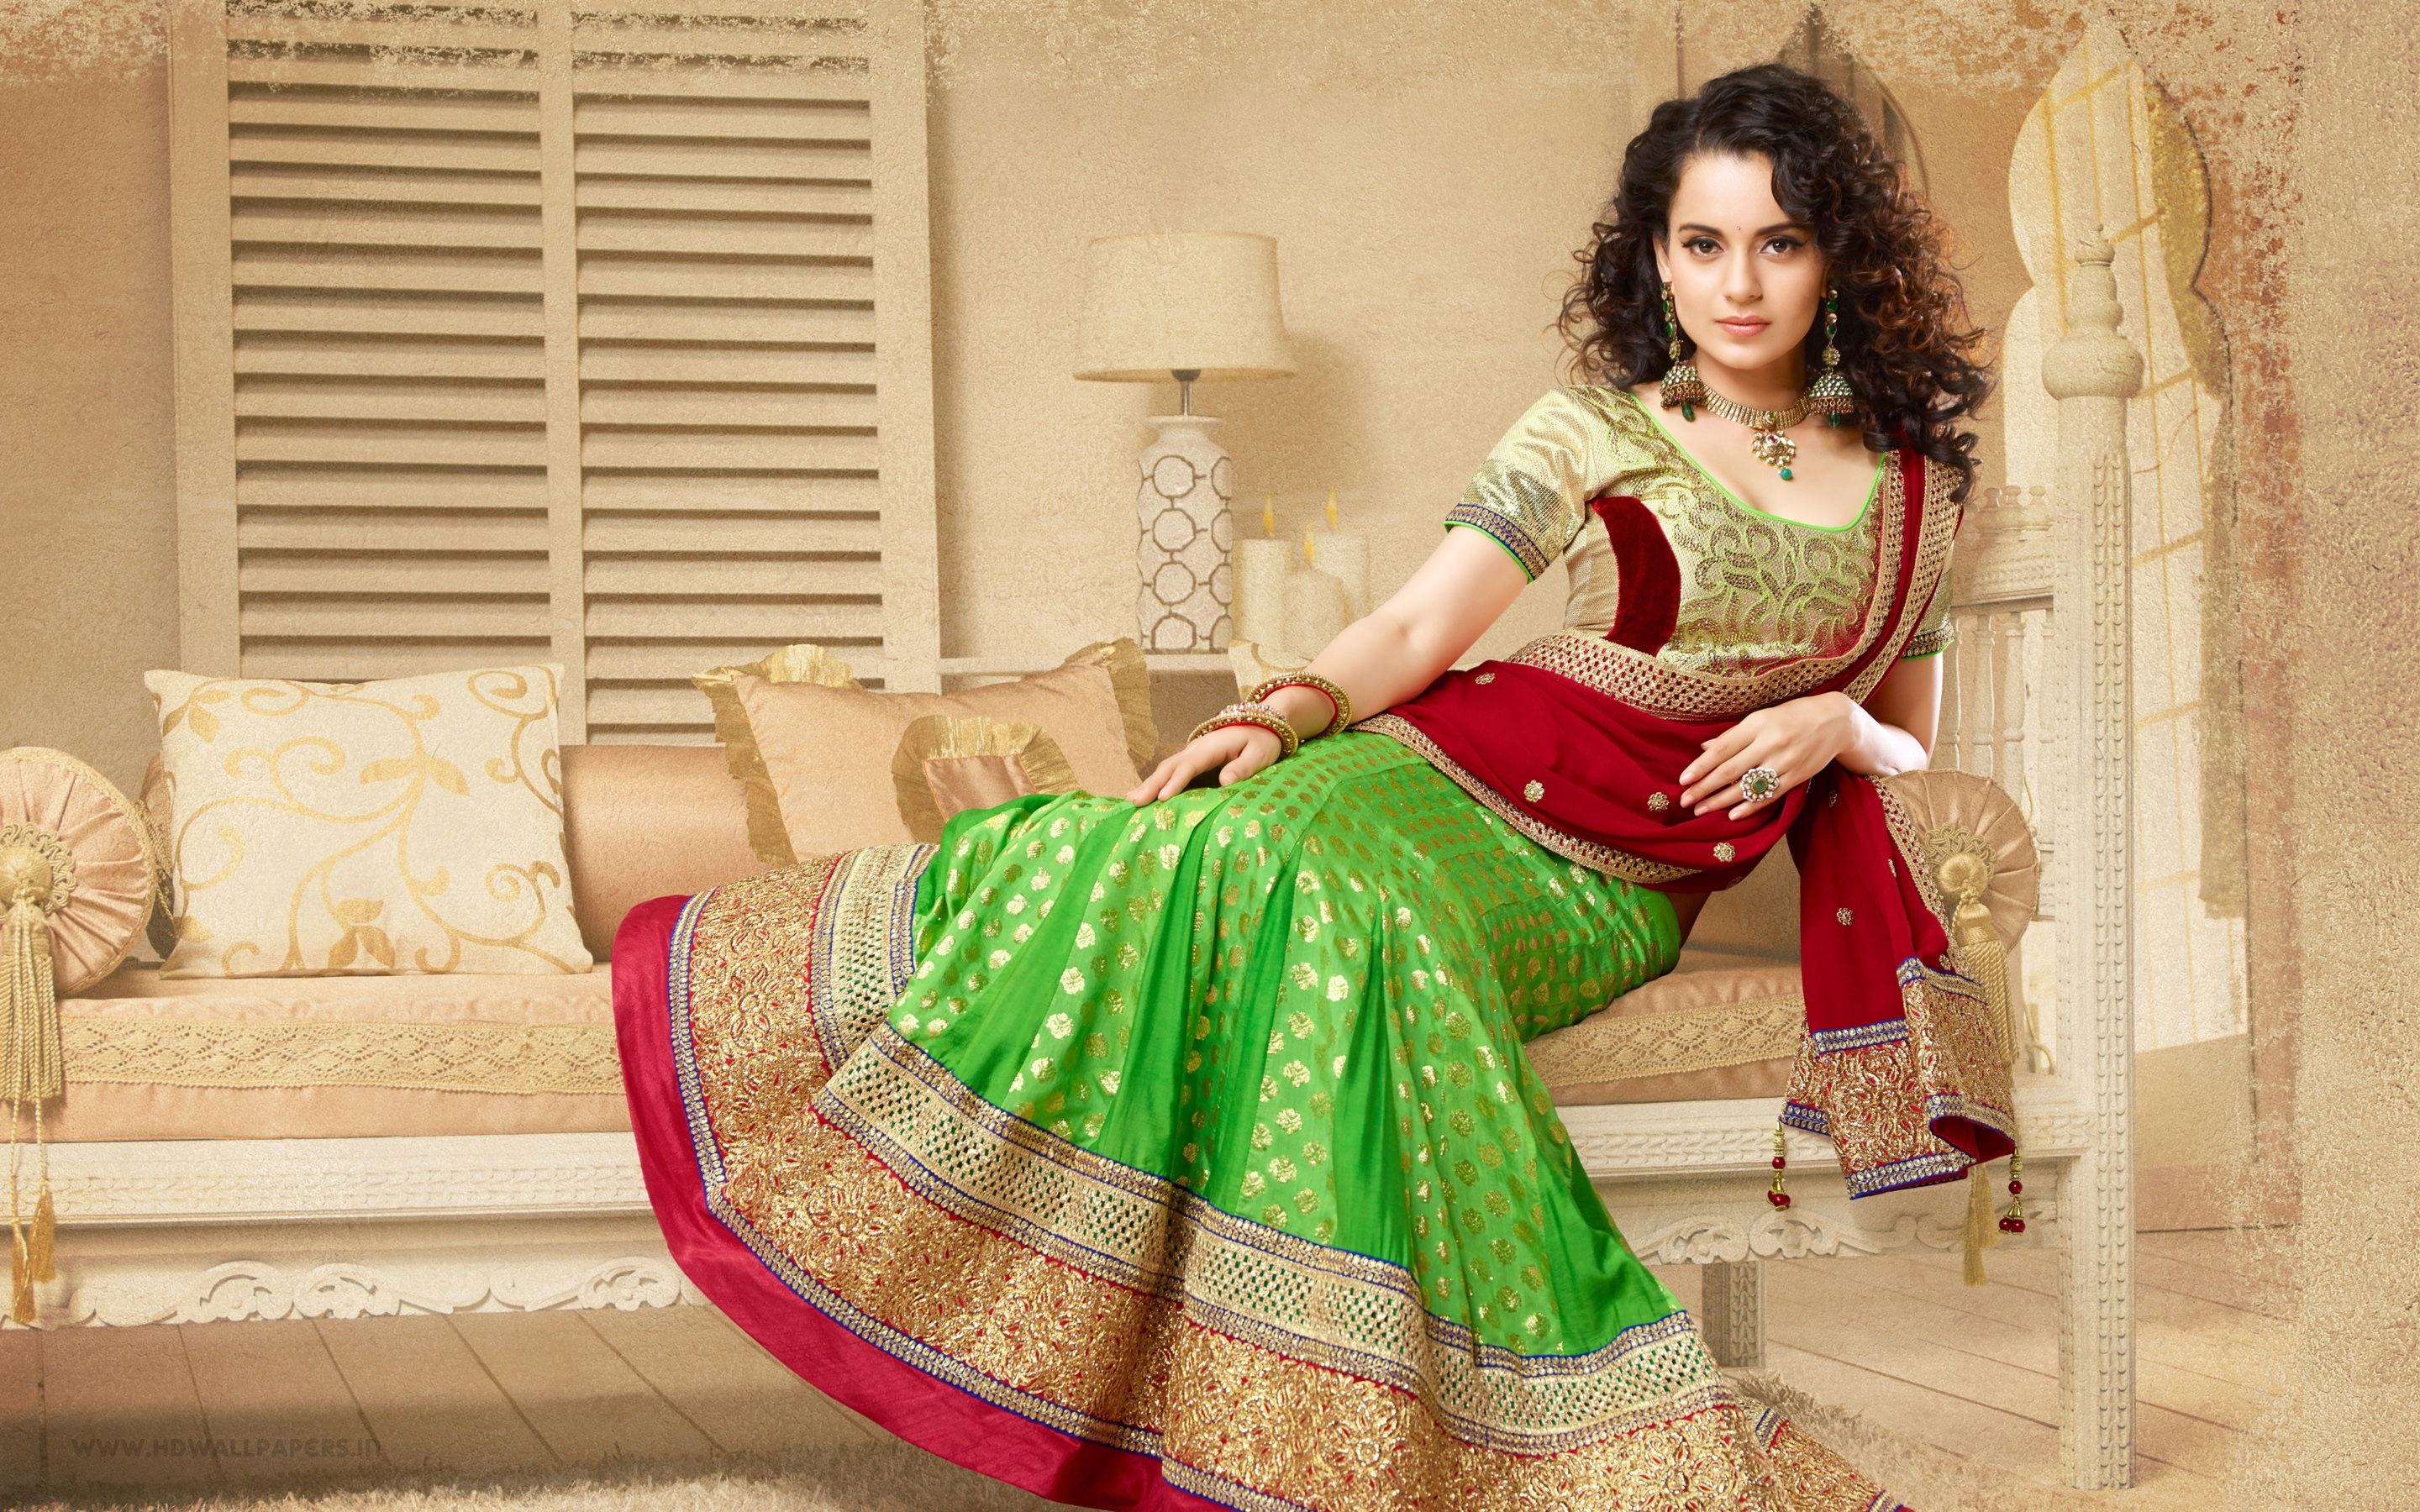 desktop kangana ranaut beautiful traditional look background mobile free hd wallpaper